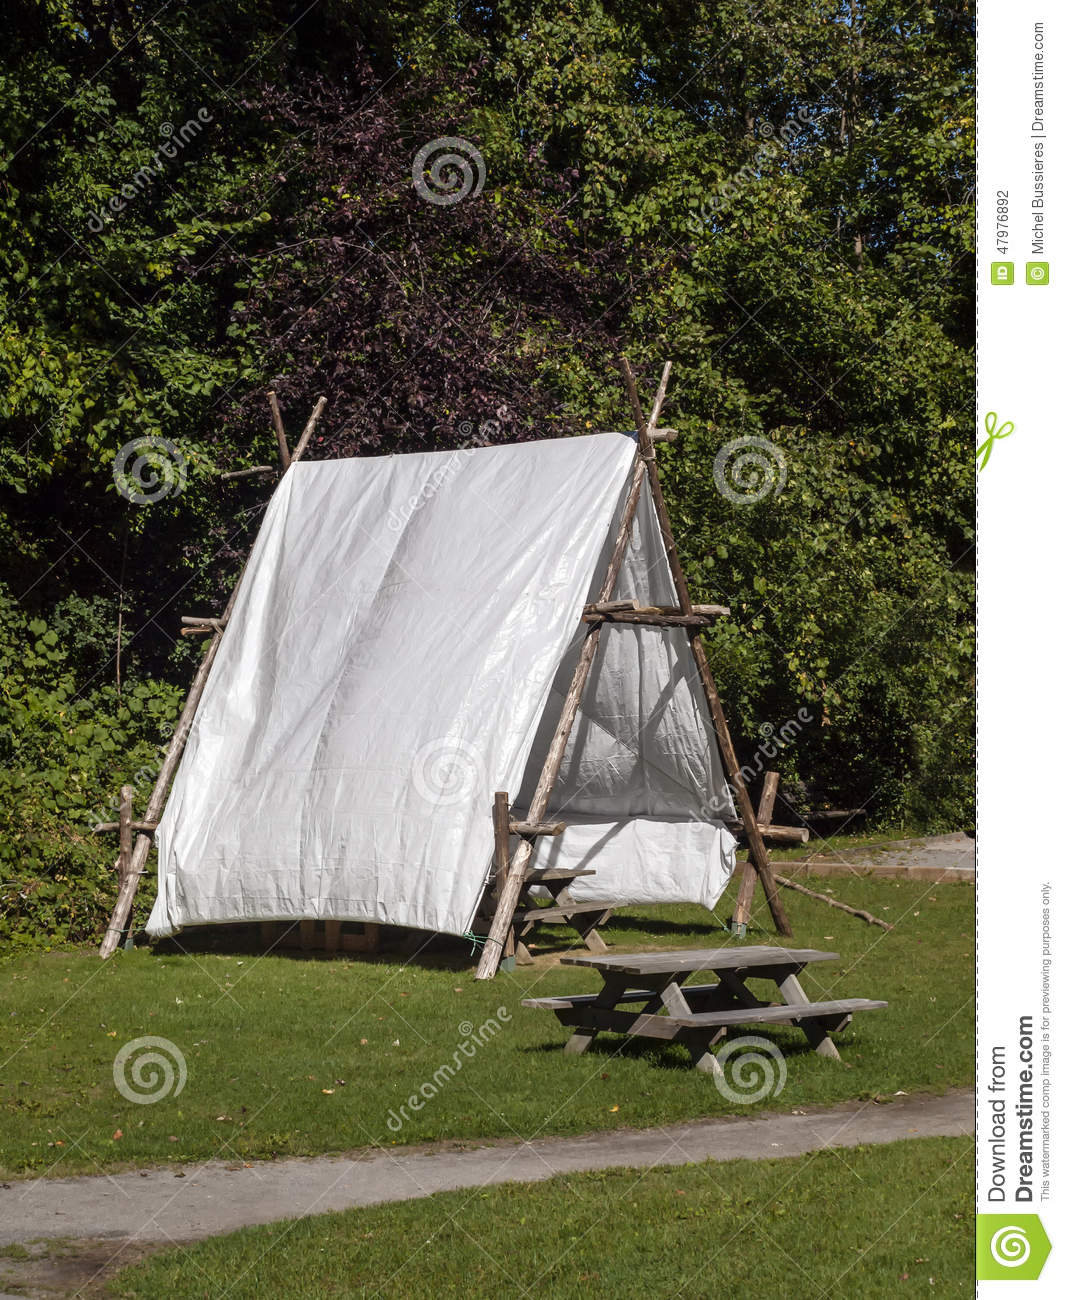 Picnic table u0026 Tent & Picnic table u0026 Tent stock photo. Image of holiday specific - 47976892